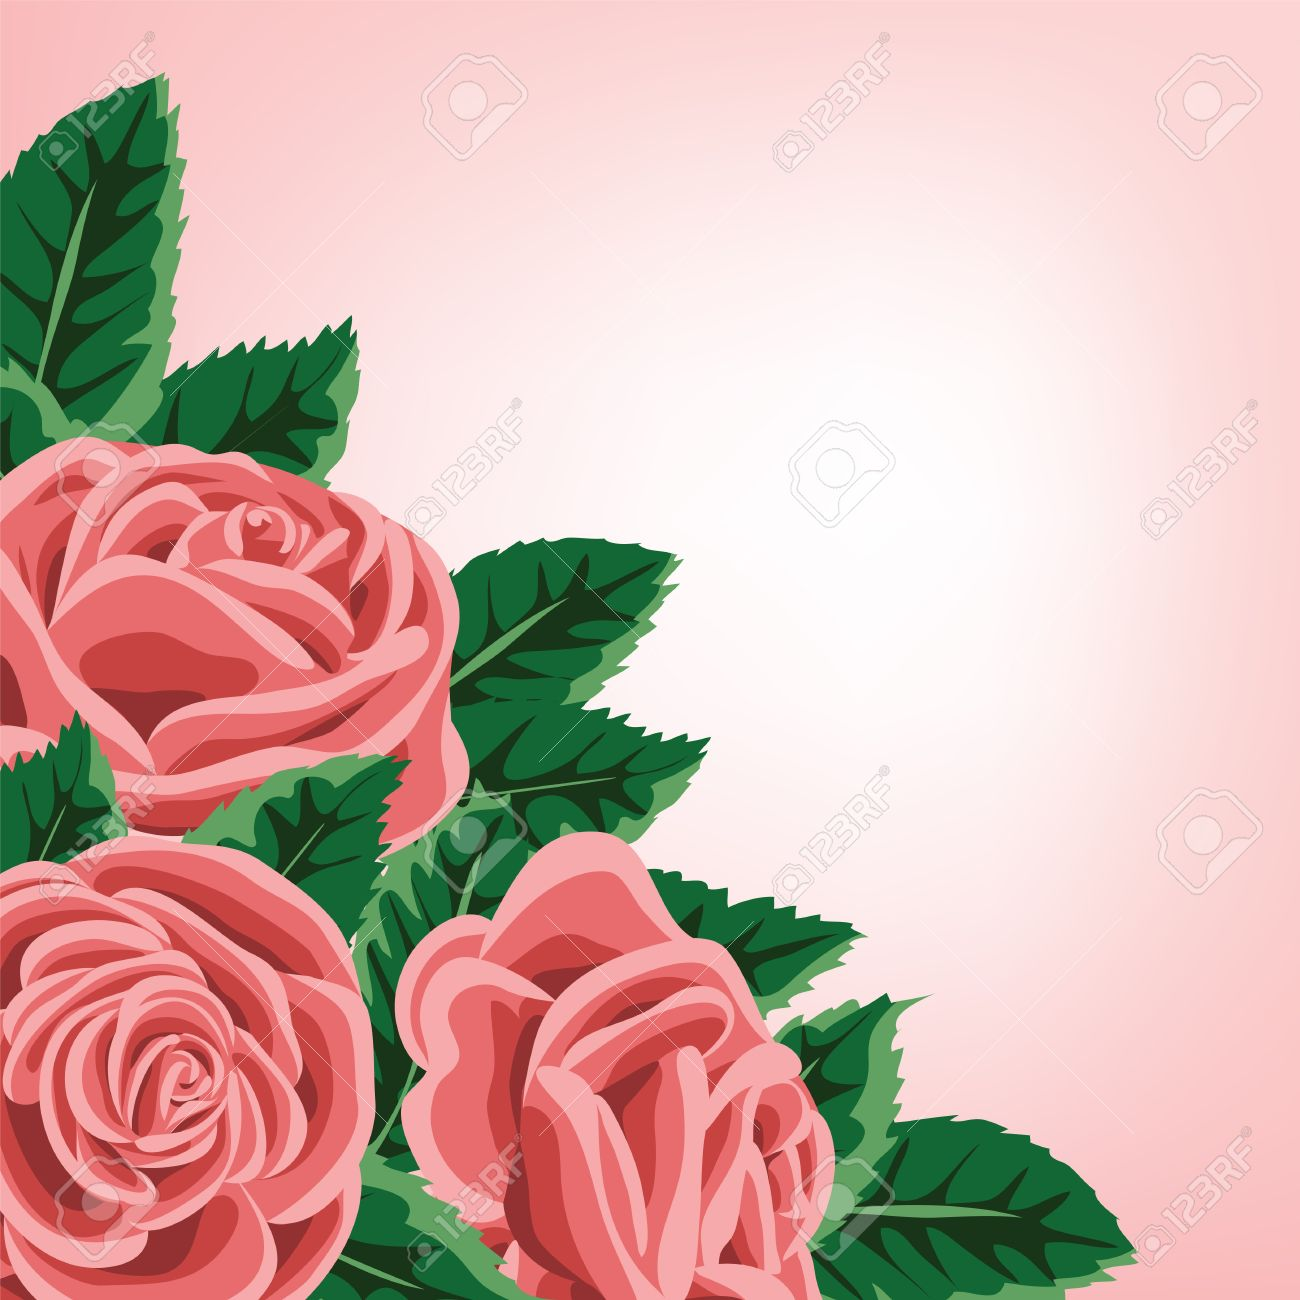 template for wedding invitation or greeting card with roses